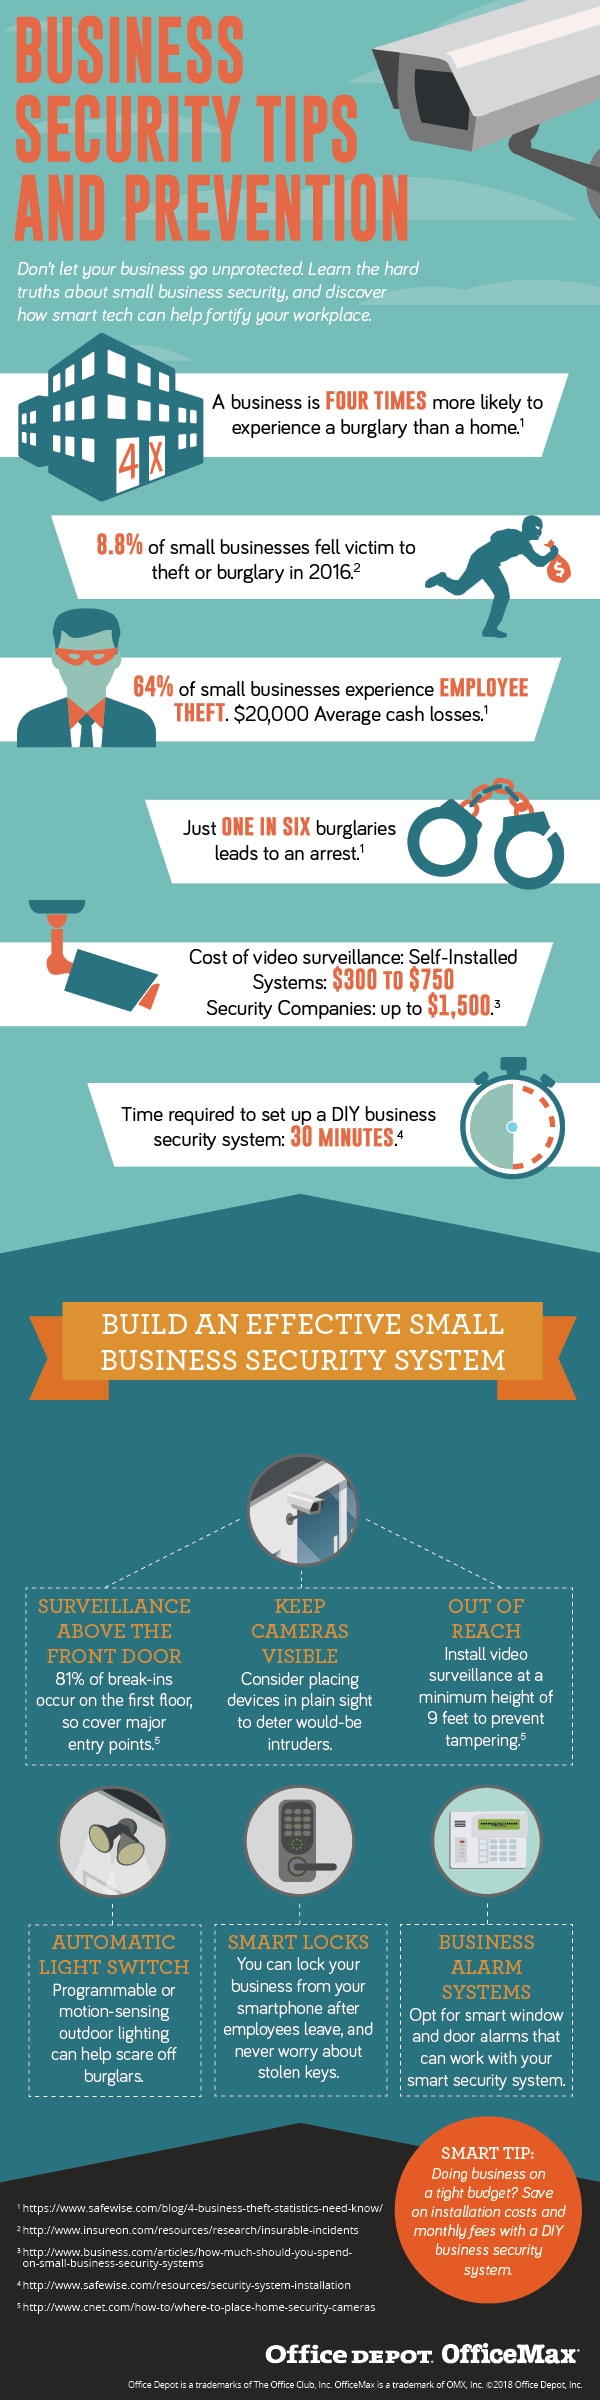 Business Security Tips and Prevention Infographic